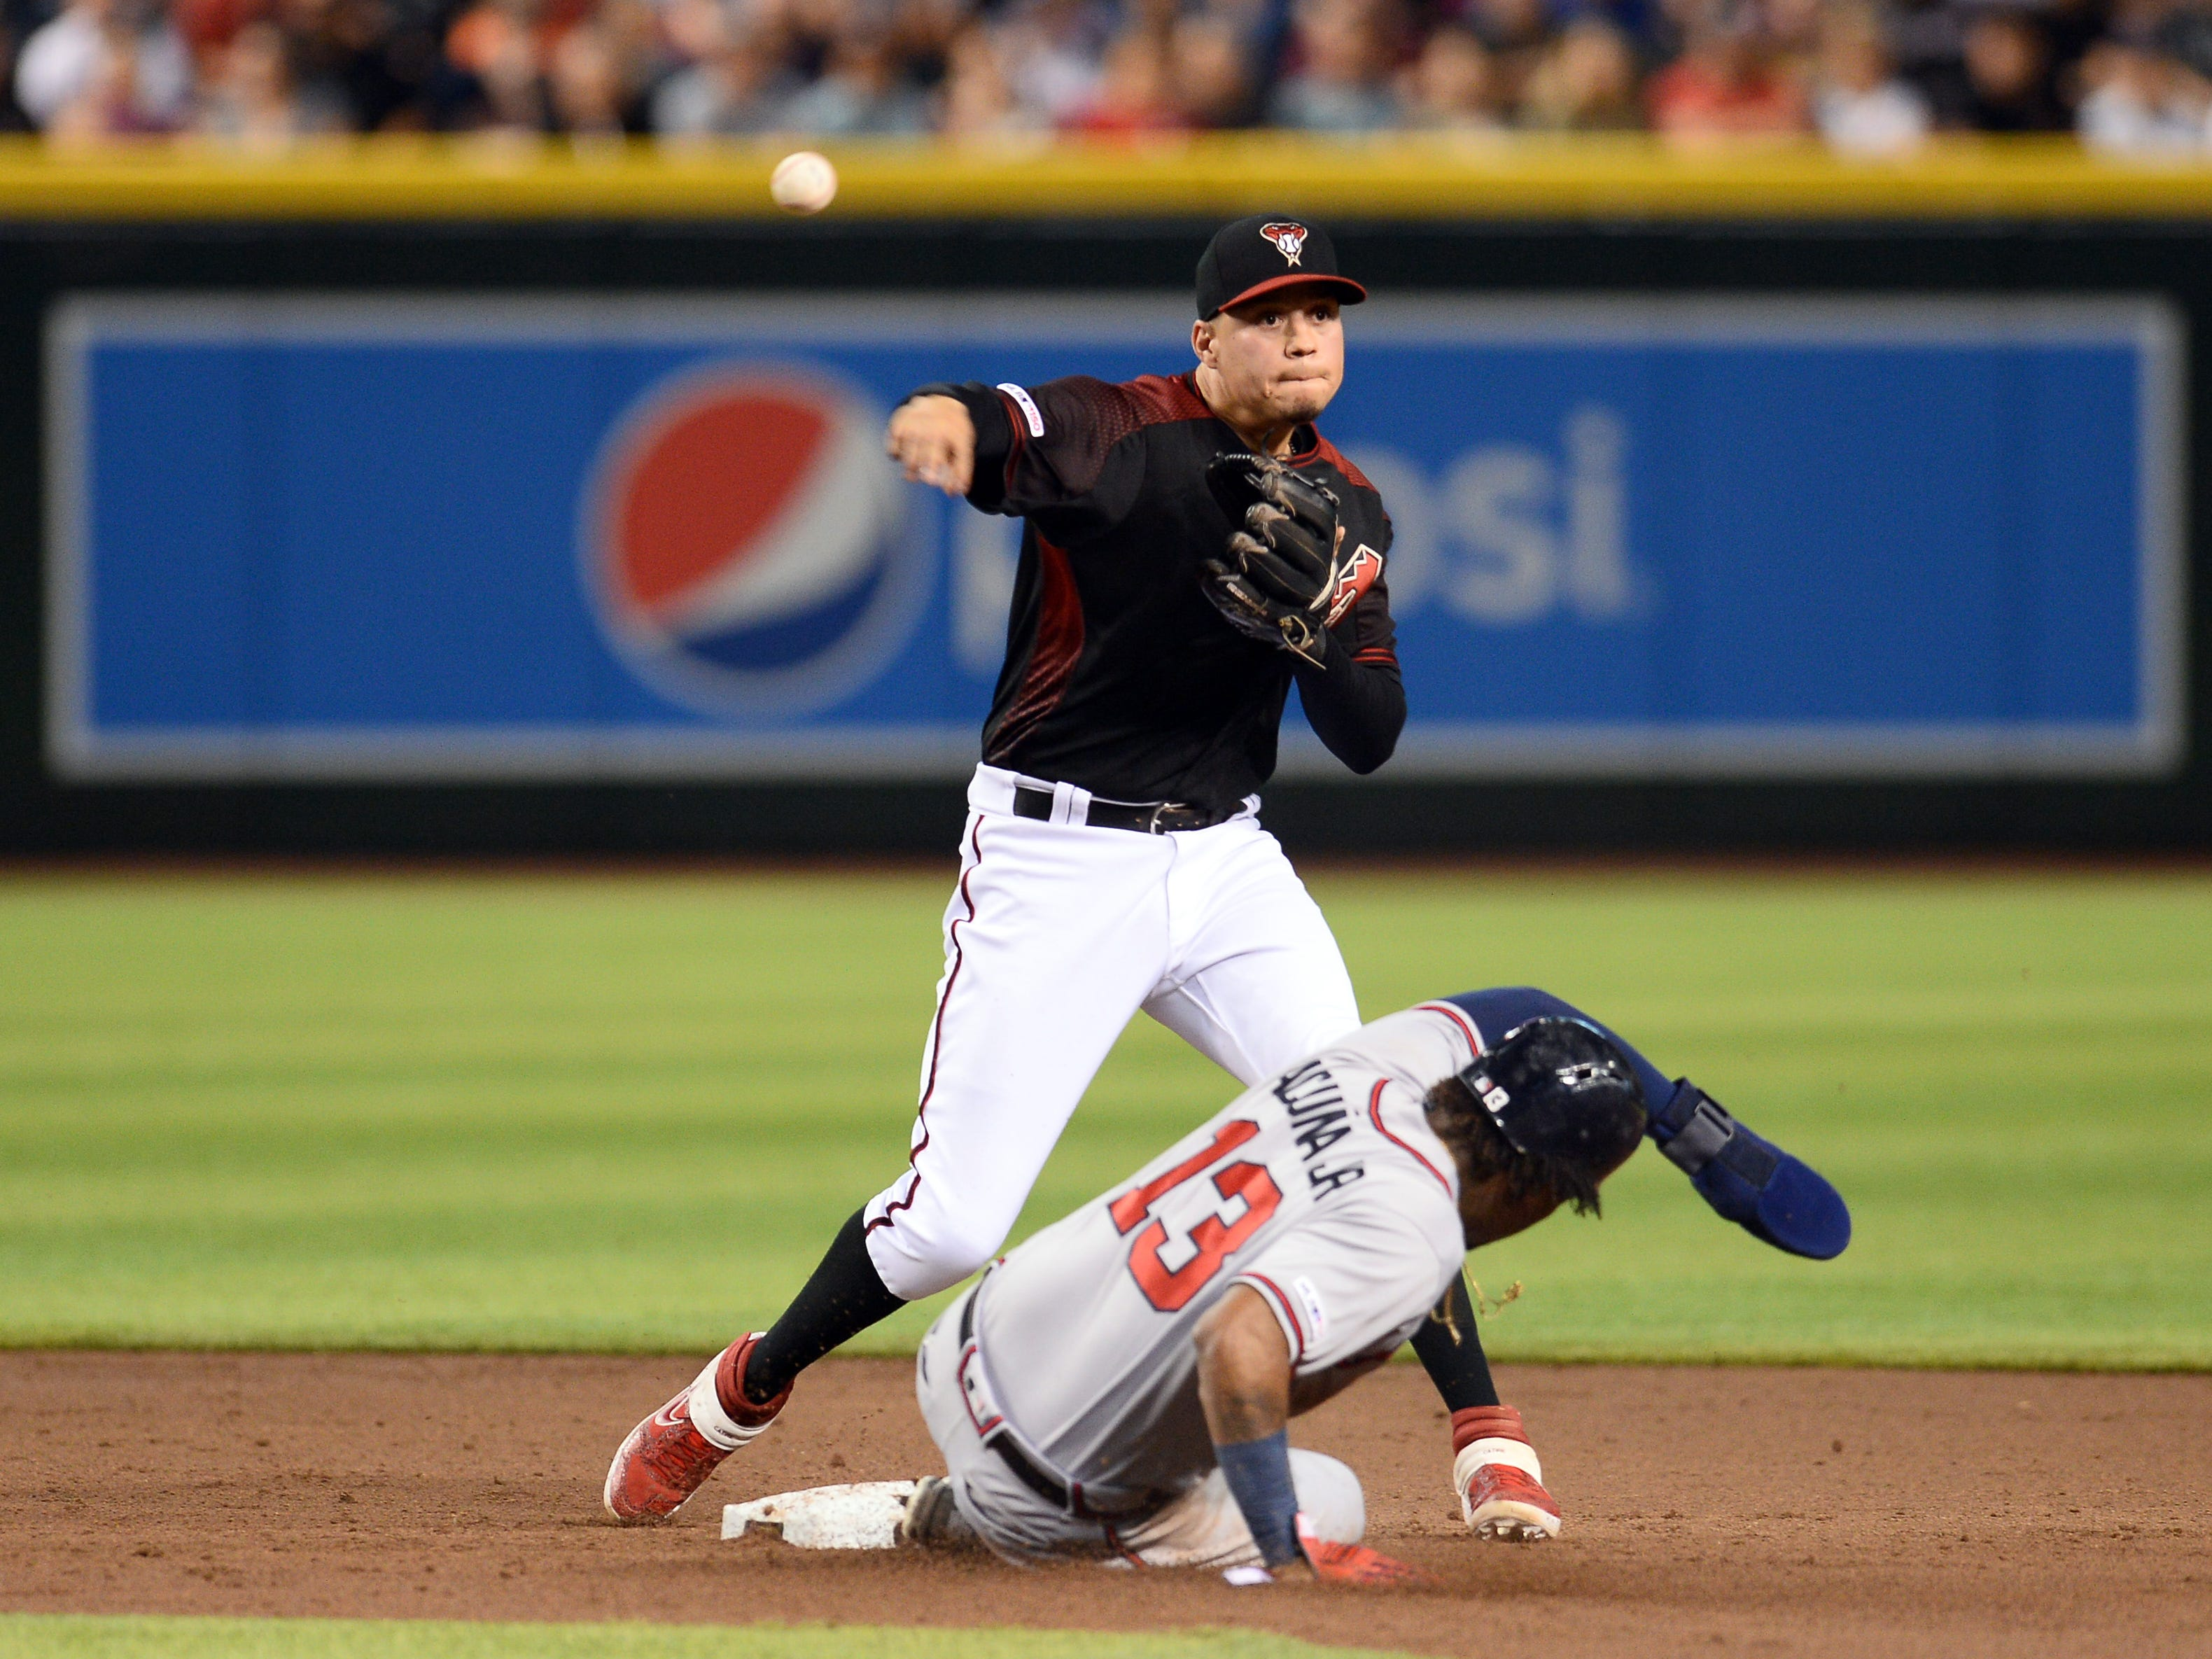 May 11, 2019; Phoenix, AZ, USA; Arizona Diamondbacks third baseman Wilmer Flores (41) throws to first after forcing out Atlanta Braves left fielder Ronald Acuna Jr. (13) at second base during the third inning at Chase Field.